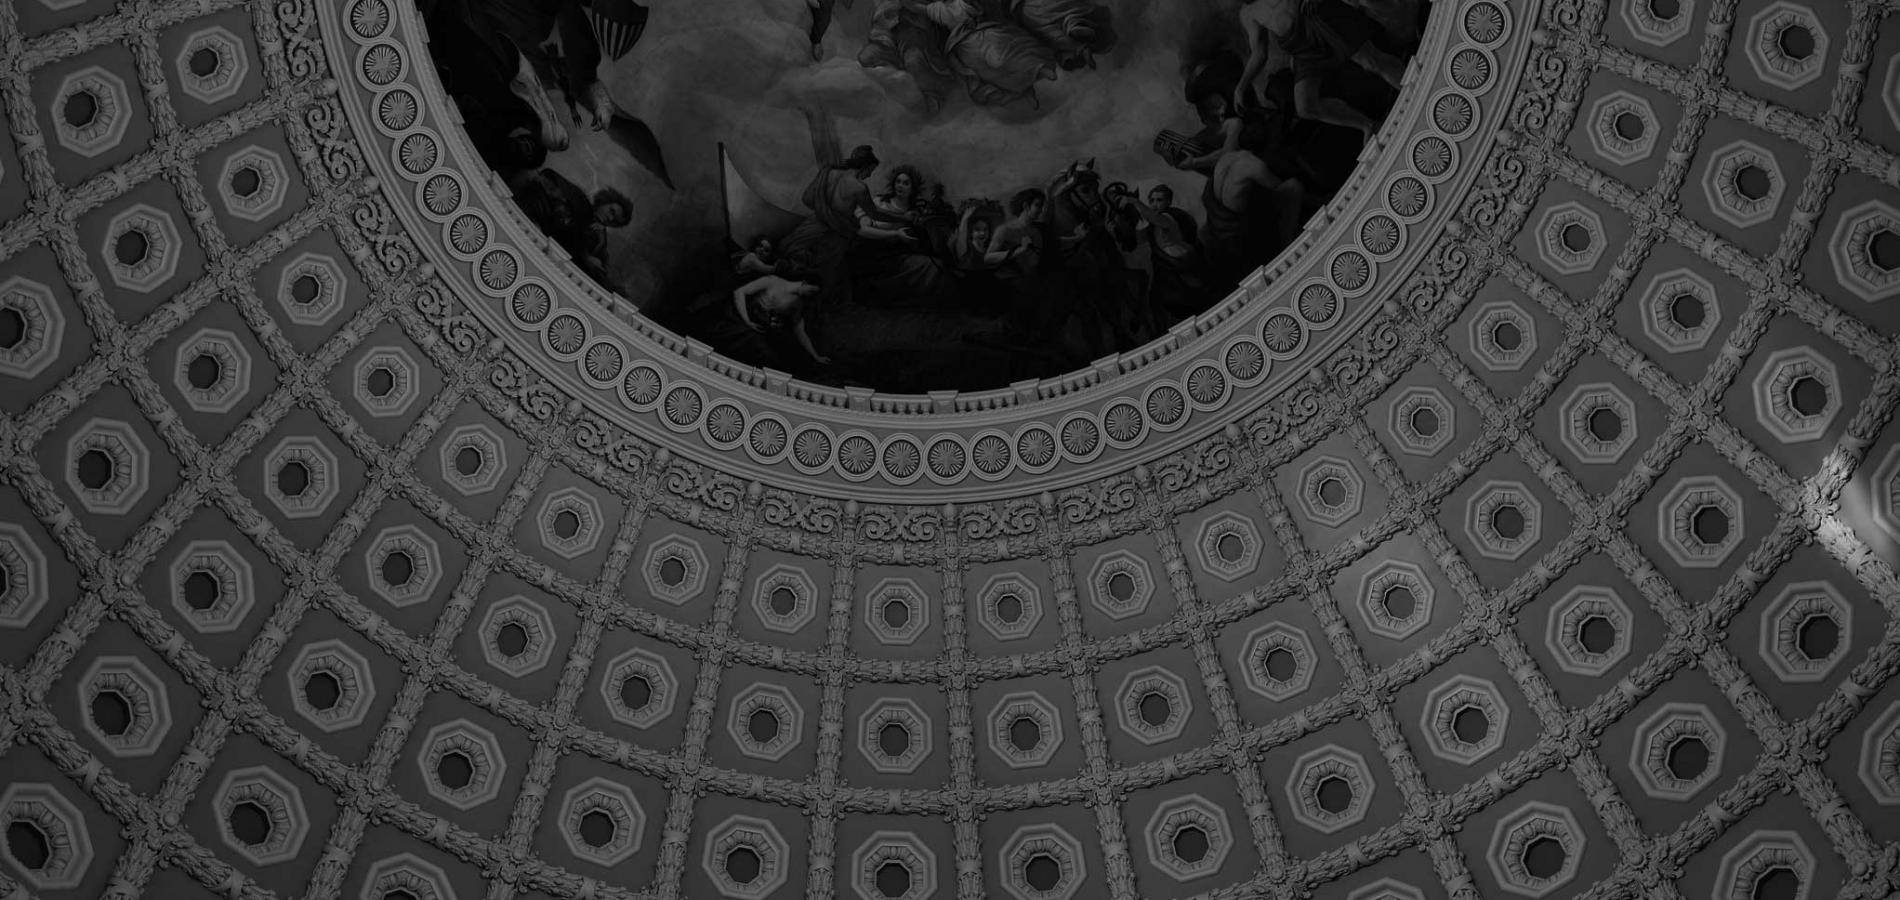 Capitol dome view from inside